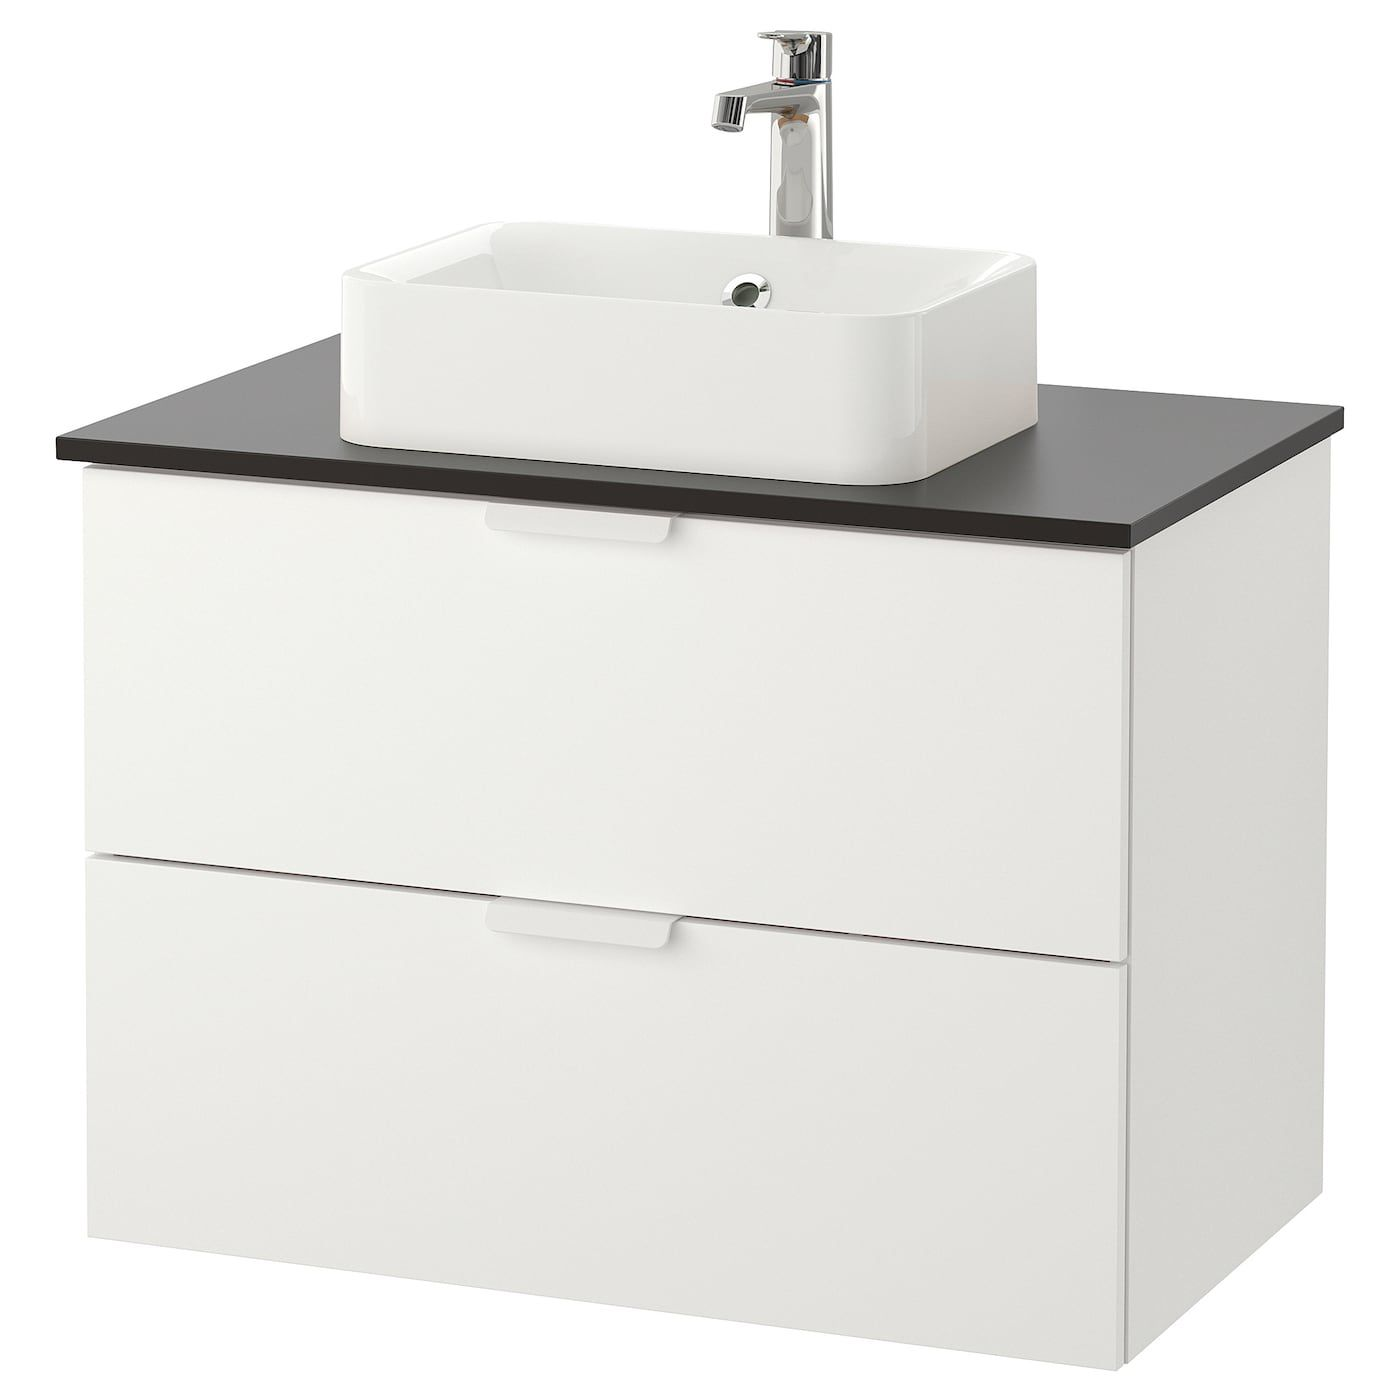 / HÖRVIK Bathroom vanity white